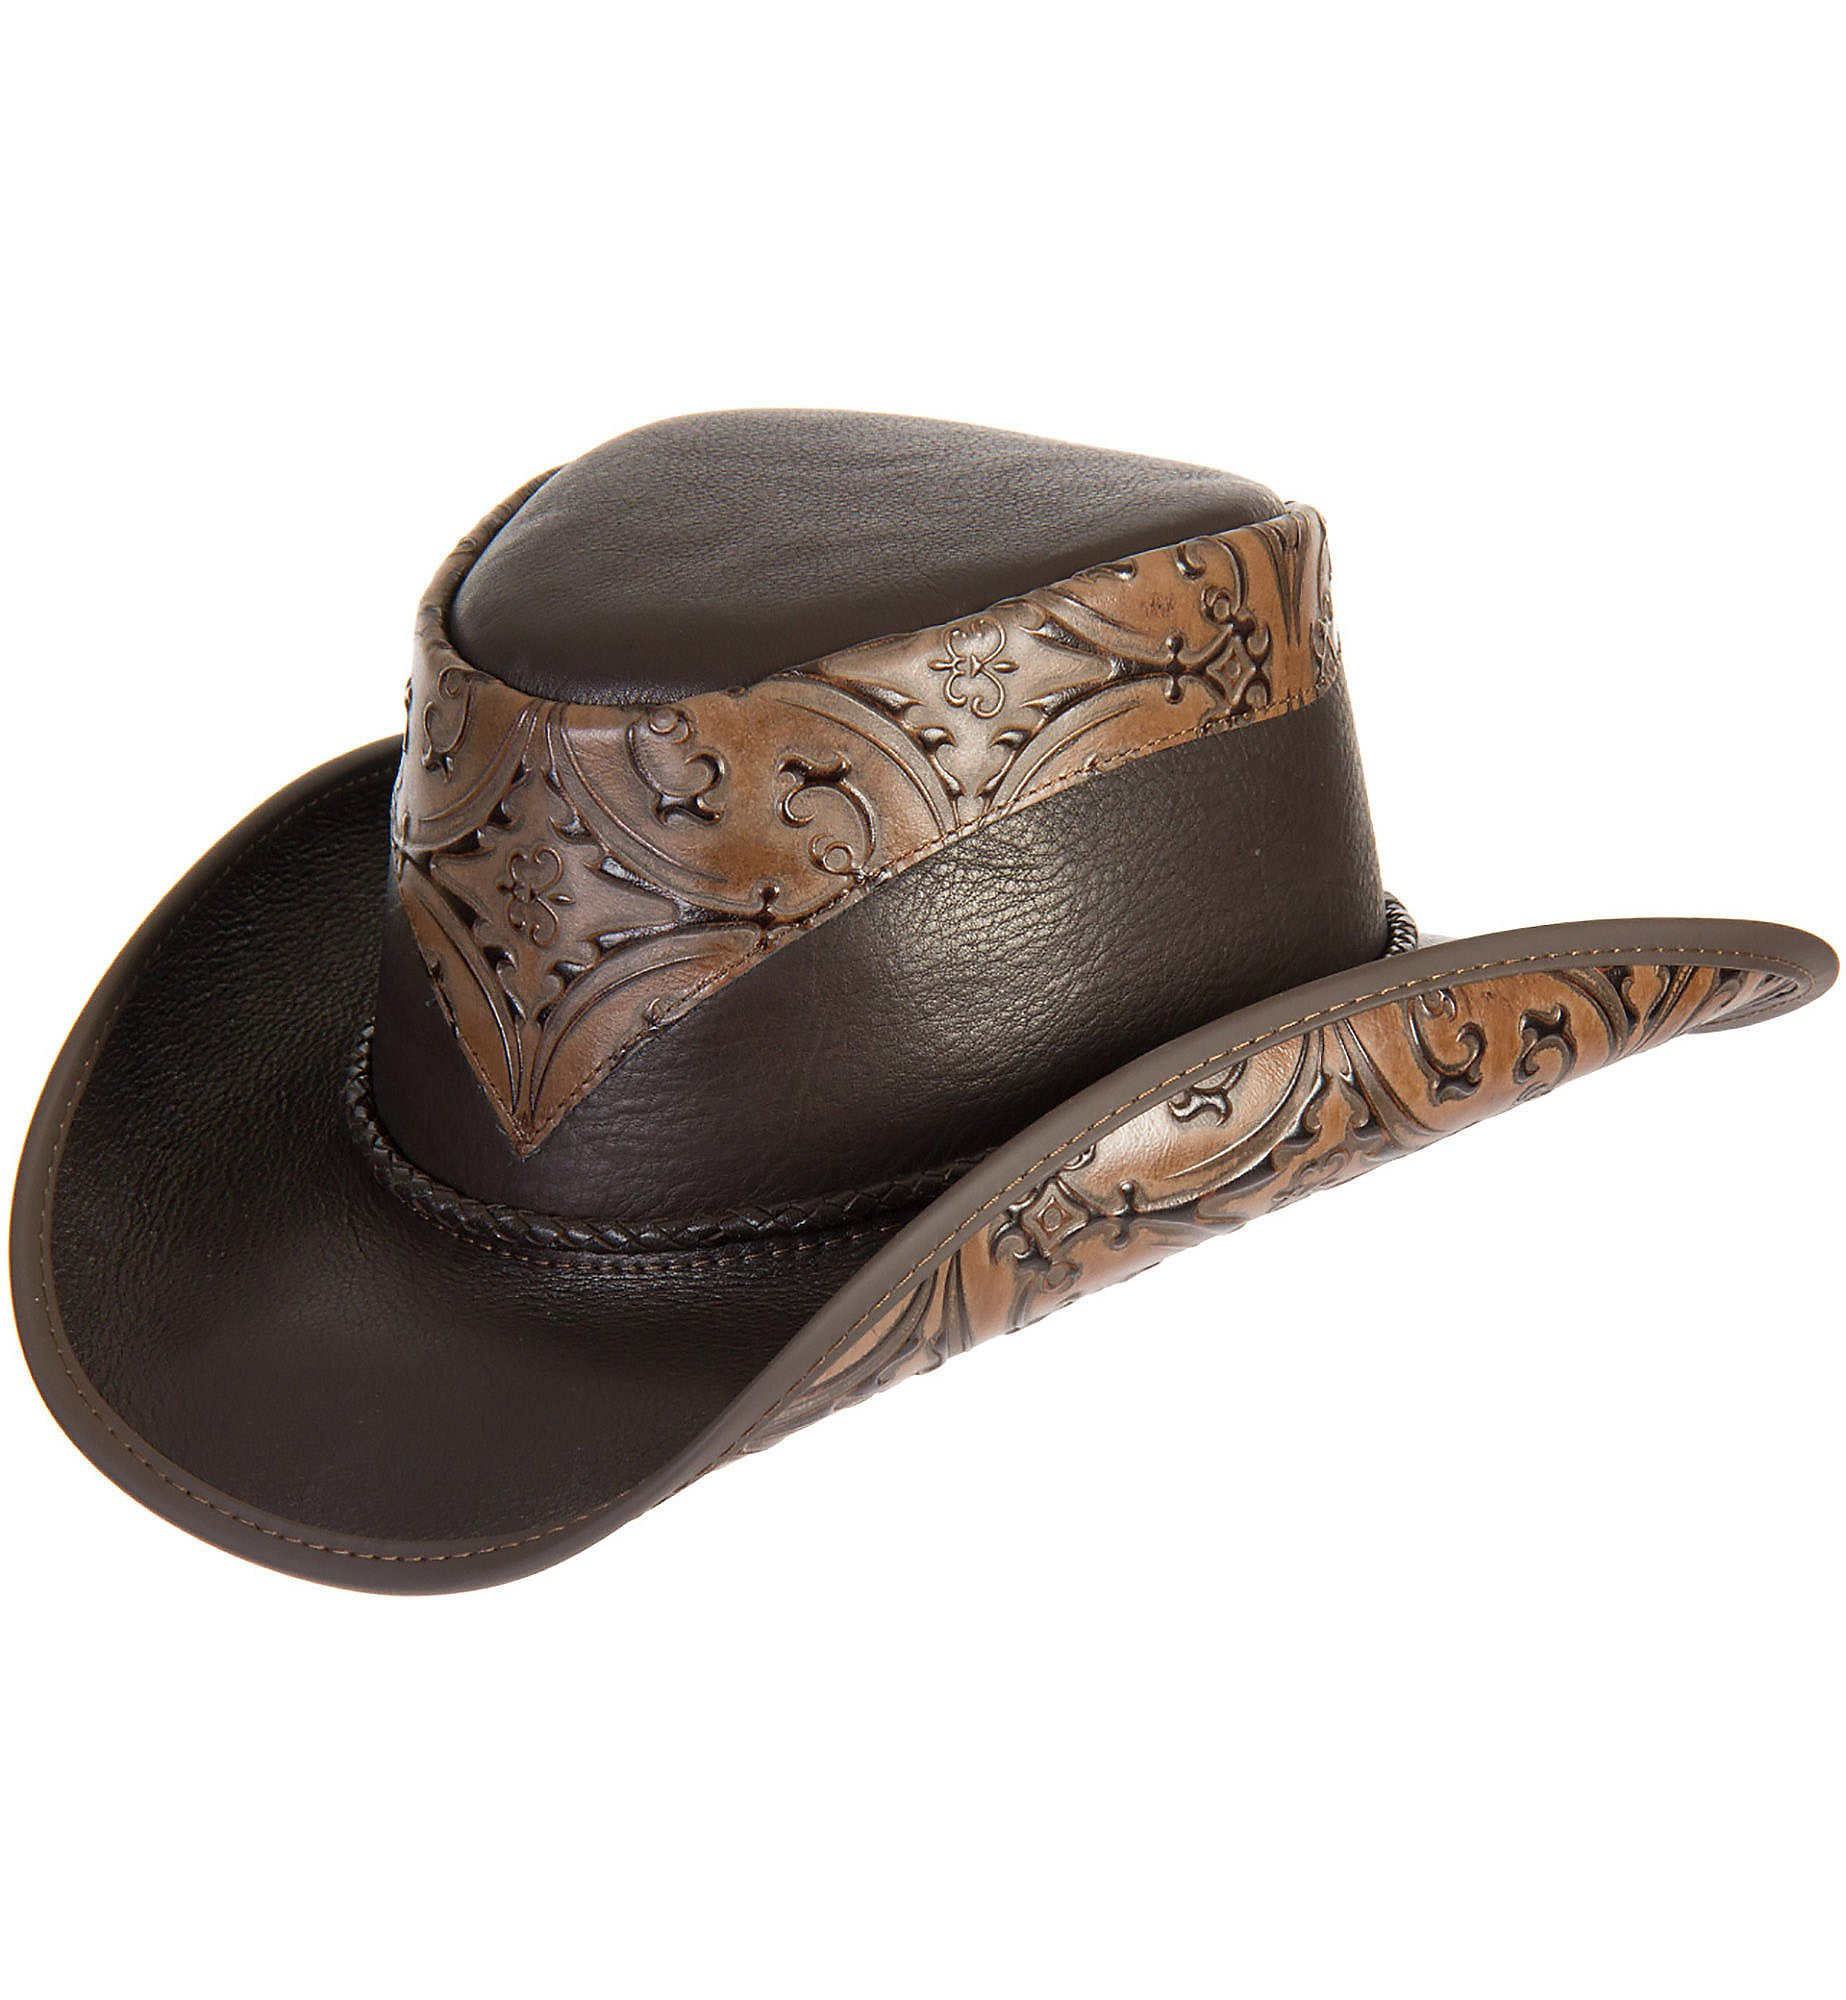 Overland Sheepskin Co Falcon Hand-Tooled Leather Cowboy Hat by Overland Sheepskin Co